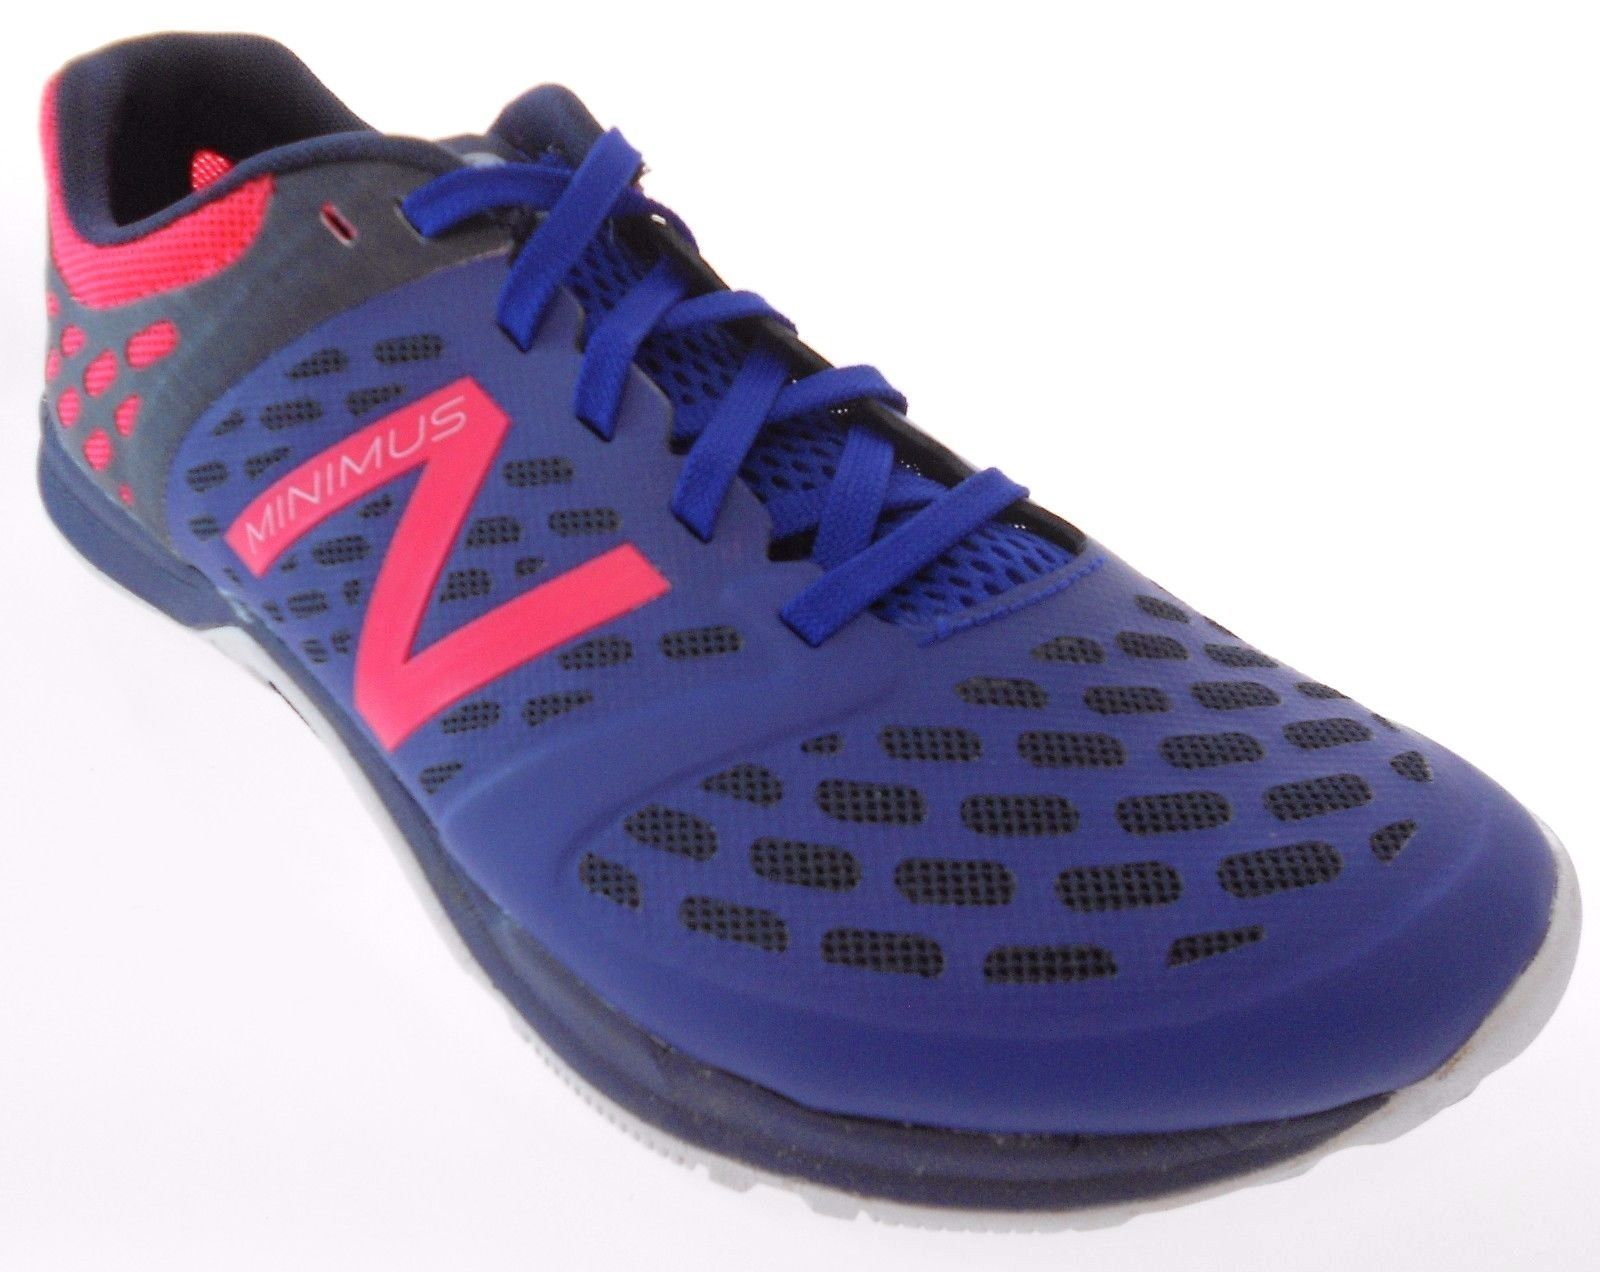 5041928b213c4 S l1600. S l1600. Previous. NEW BALANCE WX20BB4 WOMEN S 20v4 MINIMUS VIBRAM  SOLE CROSS TRAINING SHOES ...